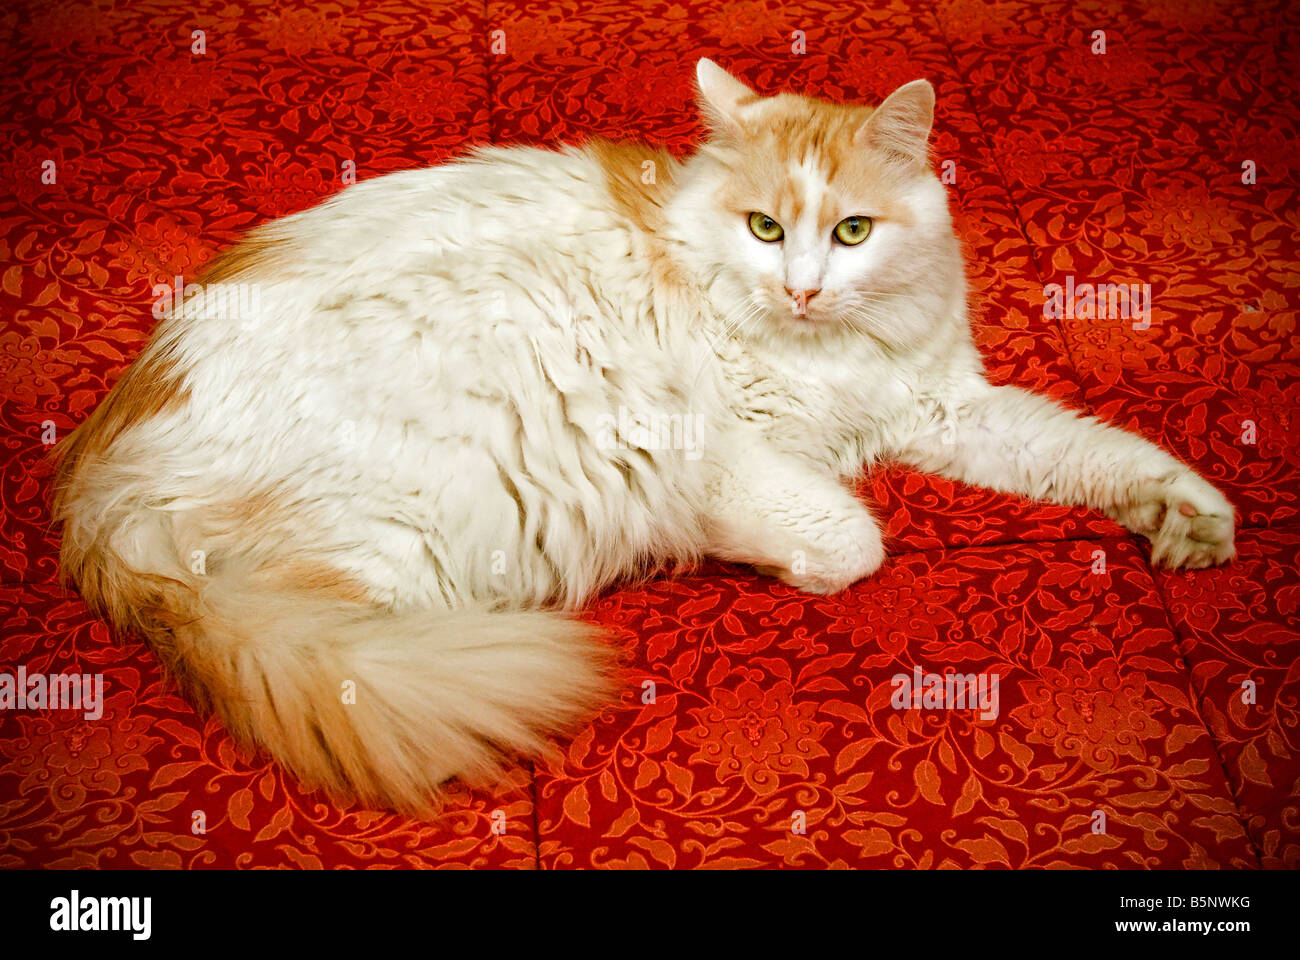 White cat on red tissue - Stock Image